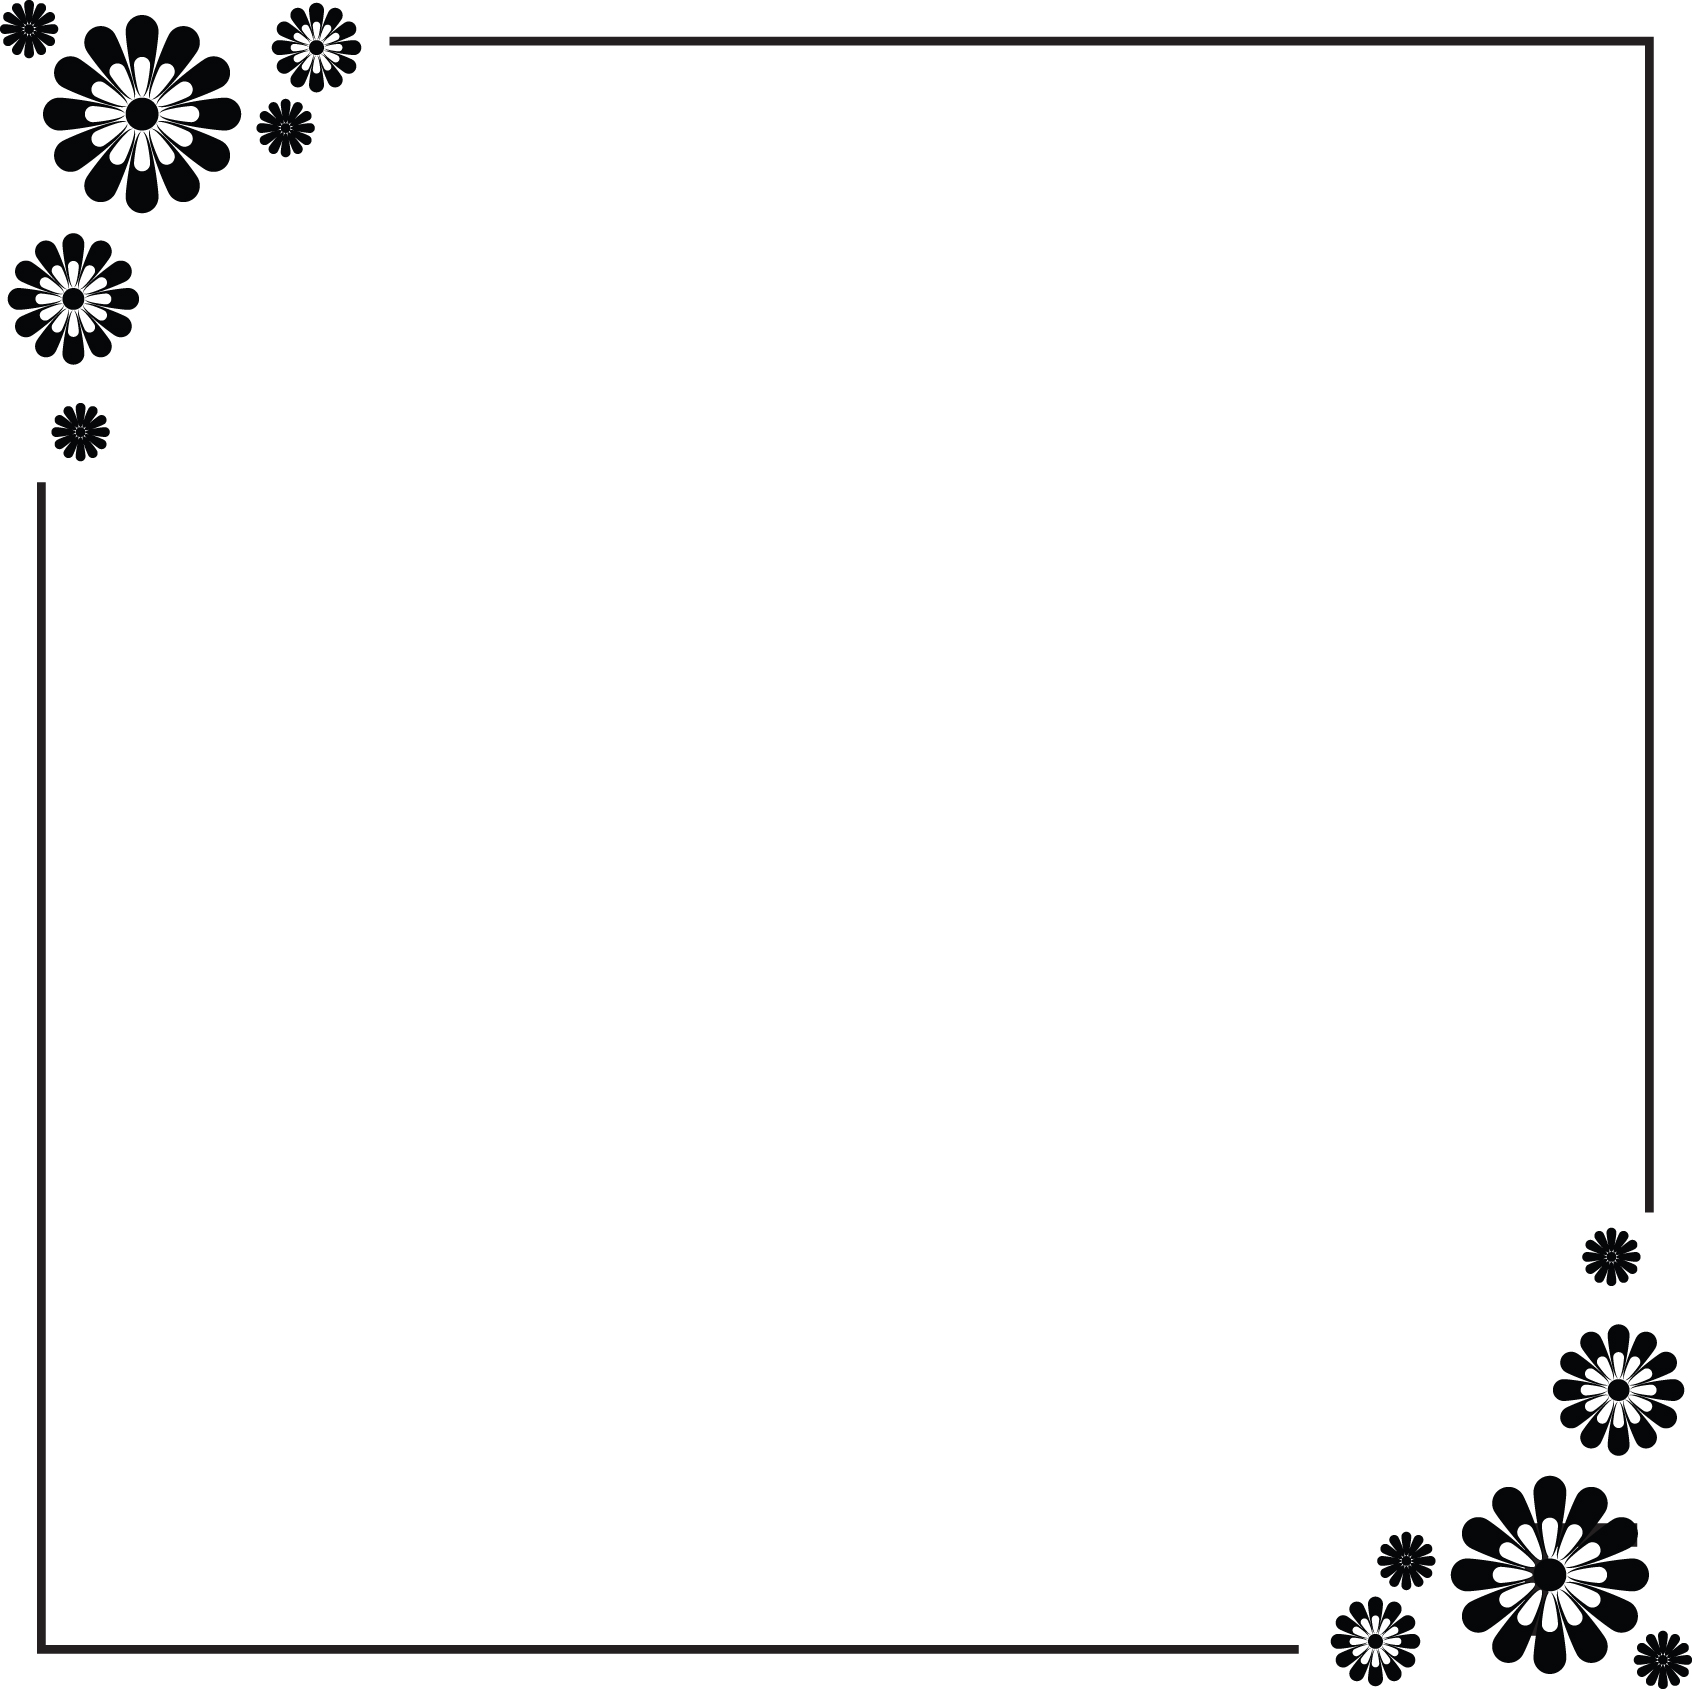 12 simple border design paper images flower border